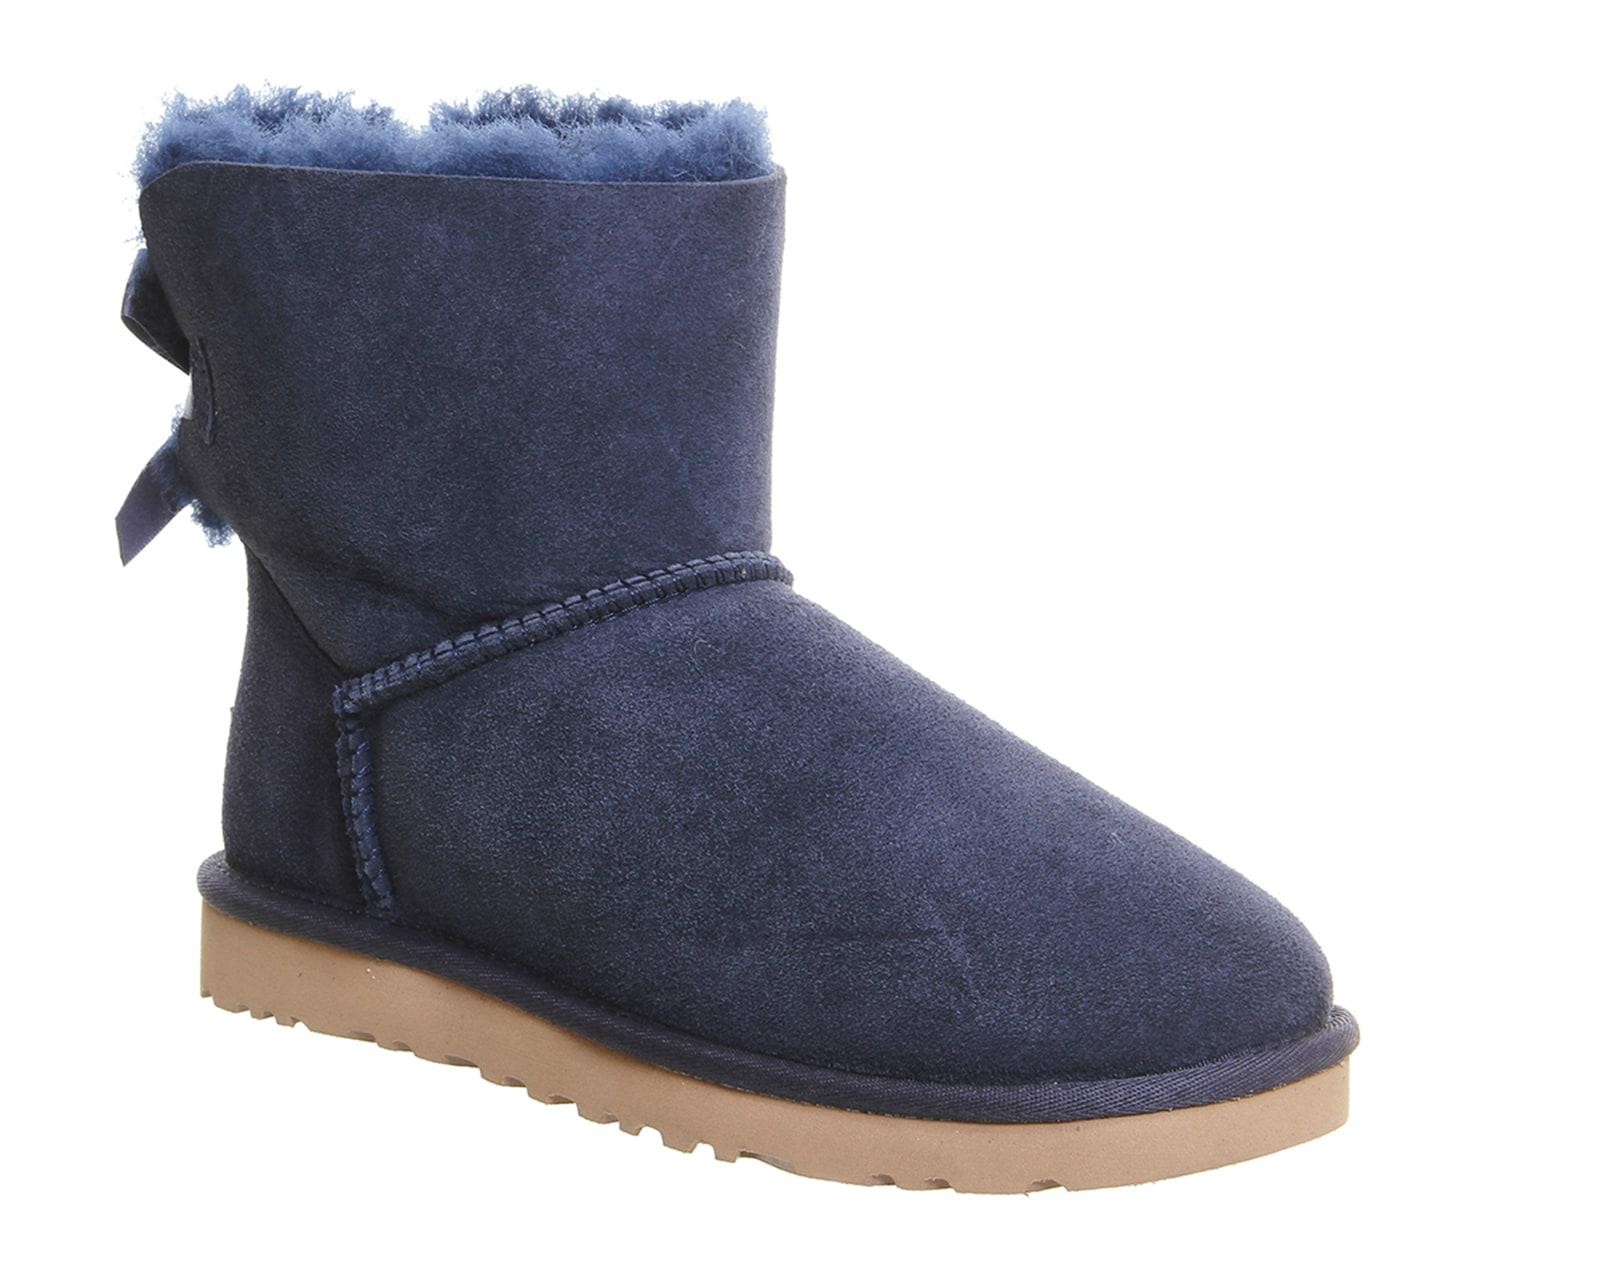 ugg mini bailey bow boots in blue lyst. Black Bedroom Furniture Sets. Home Design Ideas